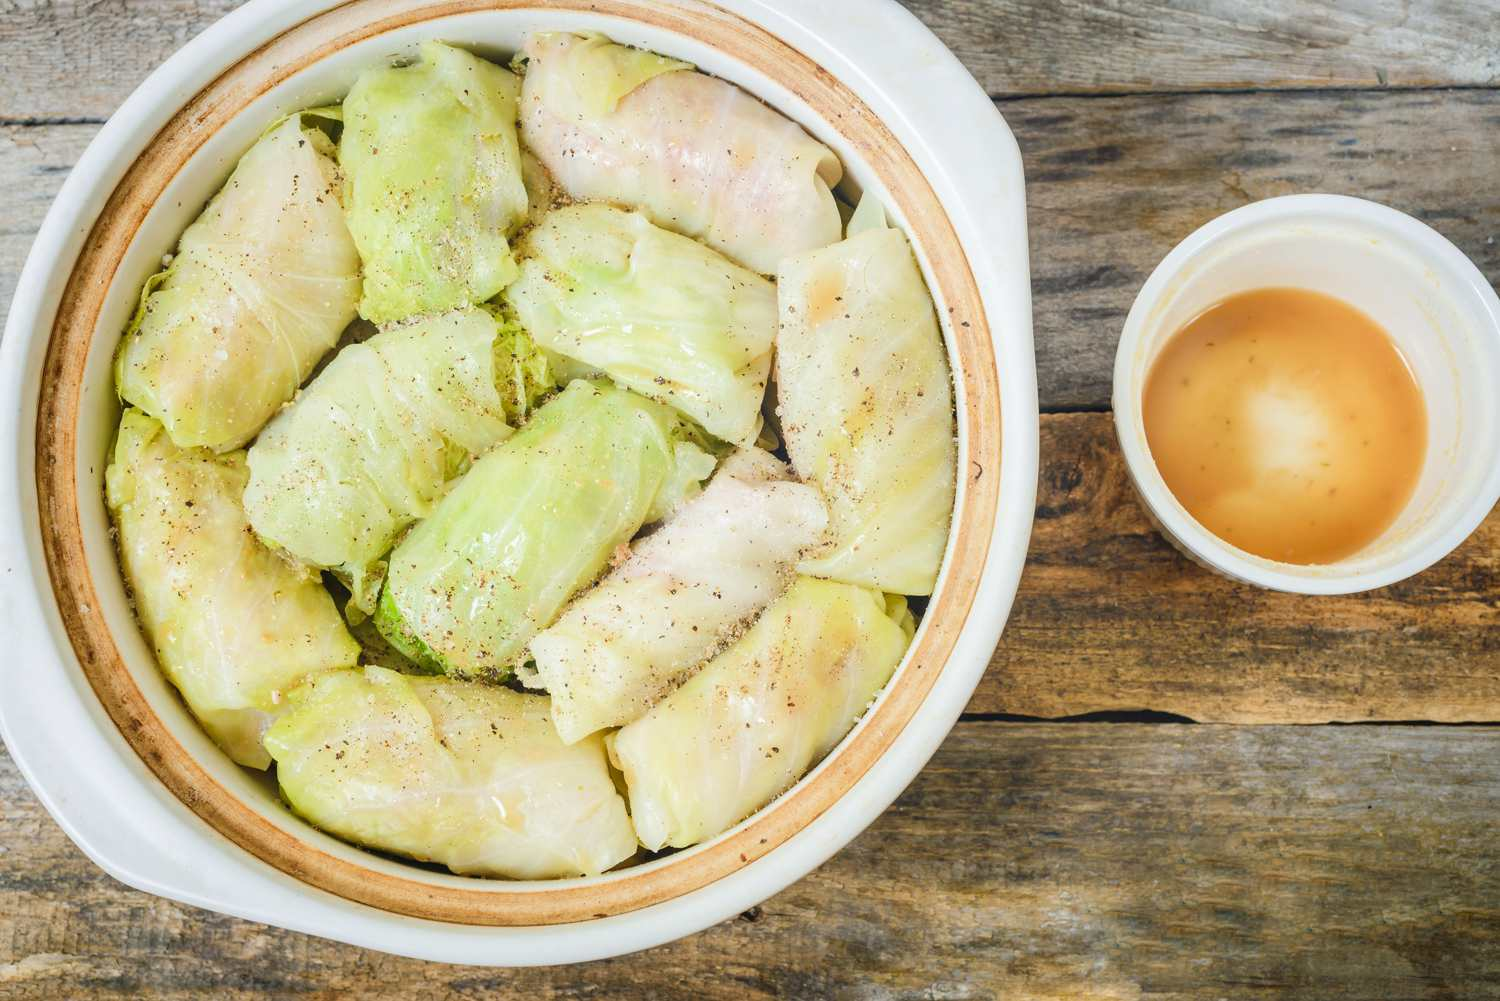 Stuffed cabbage and beef stock